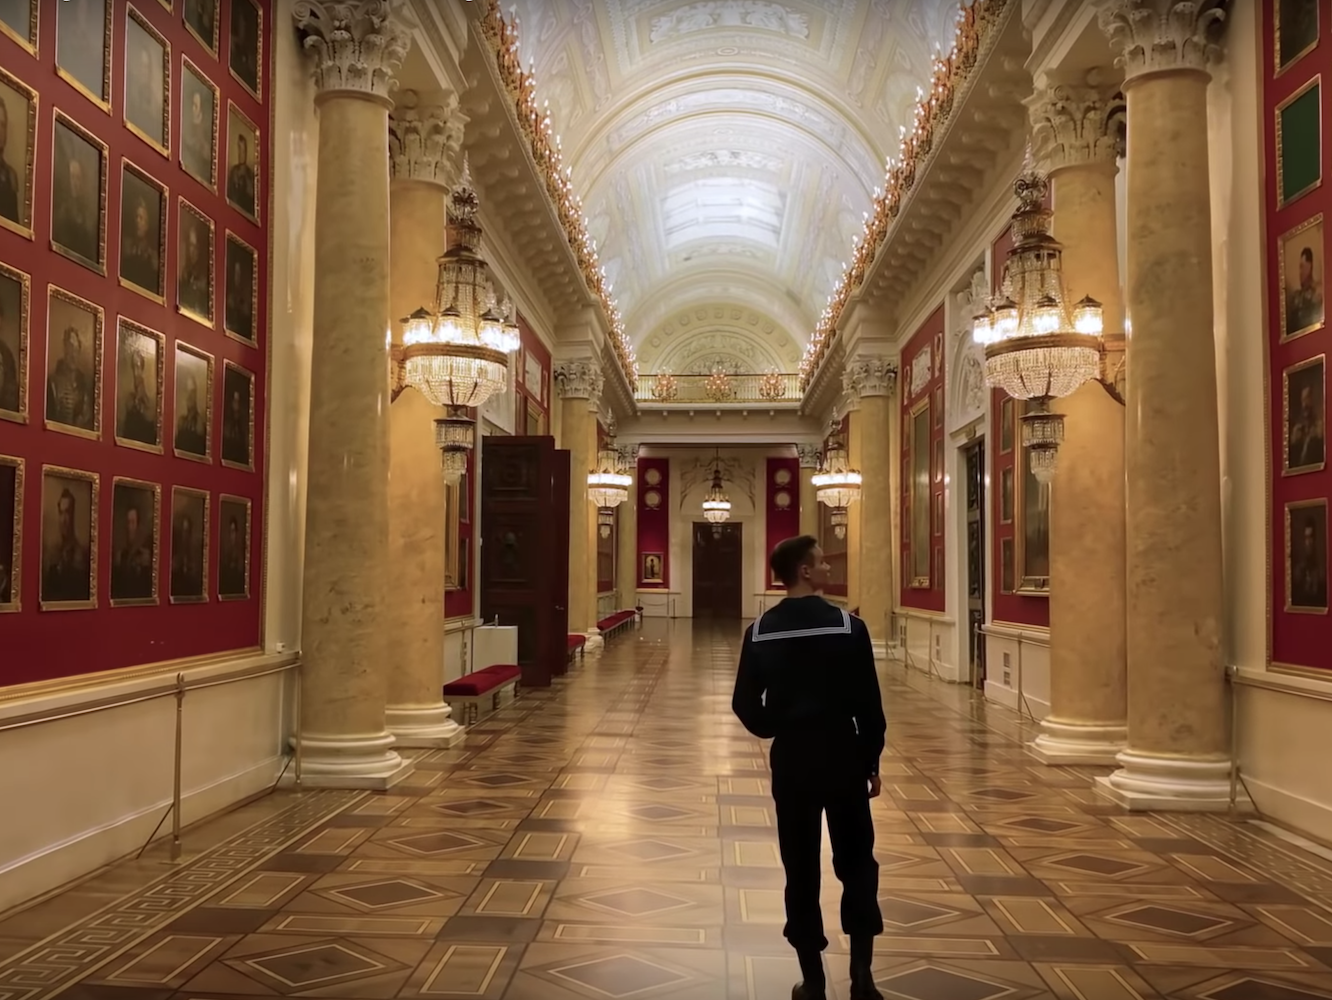 Hermitage and chill: take a five-hour tour of Russia's magnificent museum, captured in a single shot